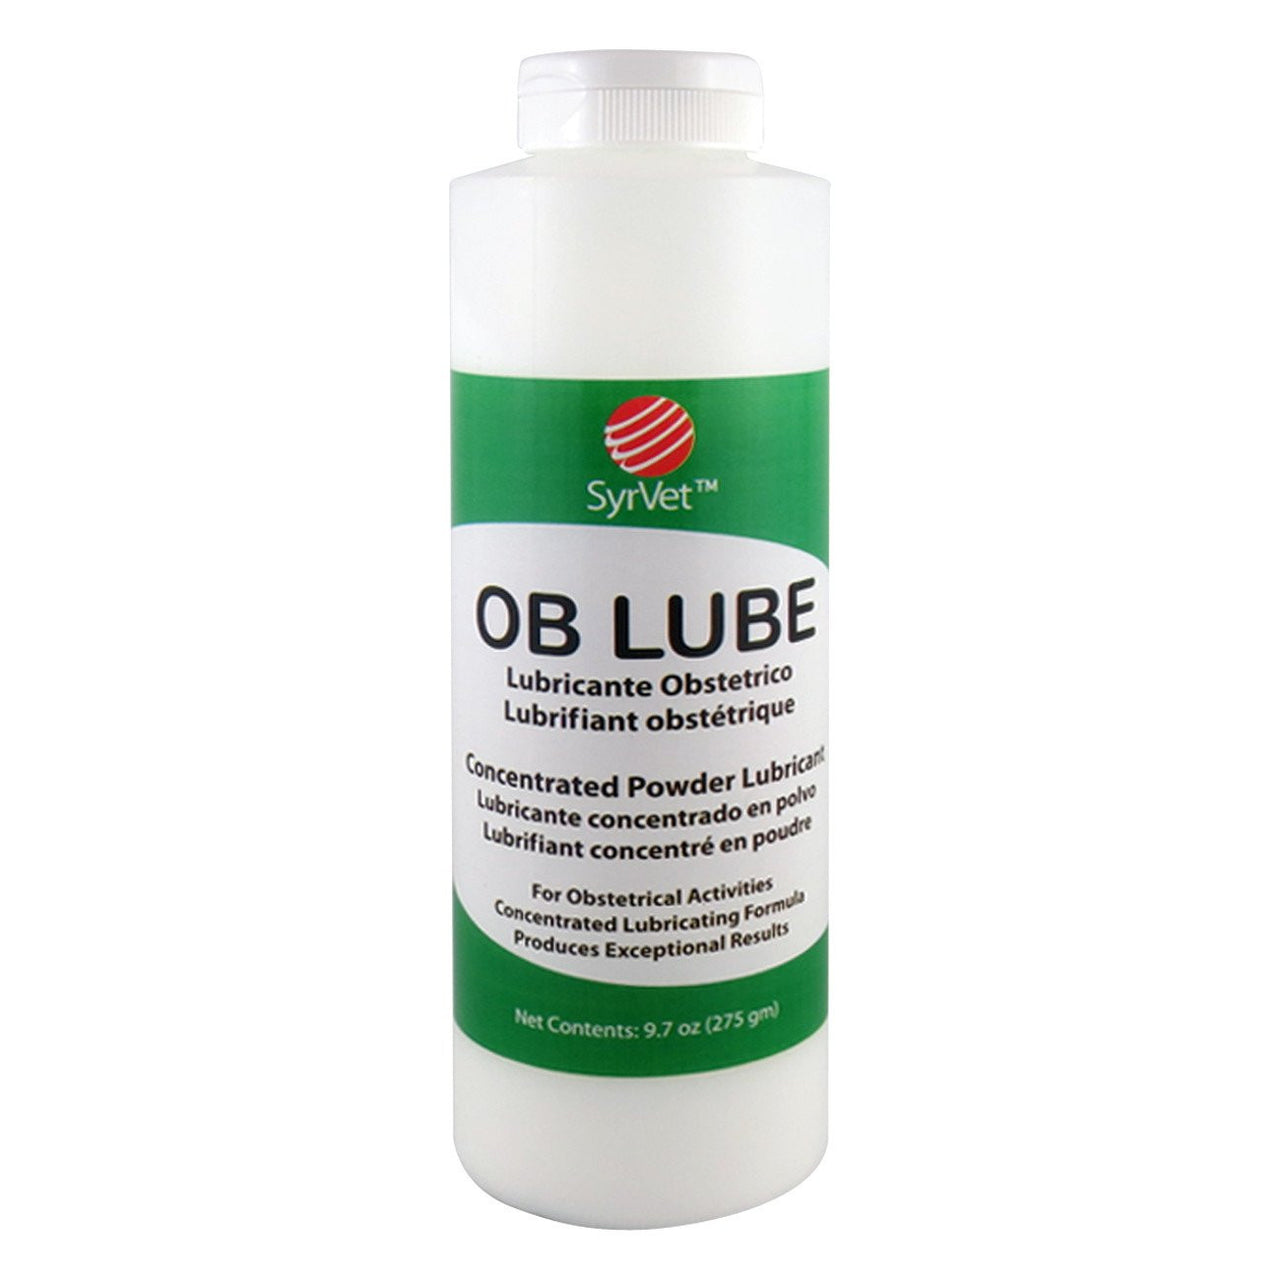 Syrvet OB lube powder 275g